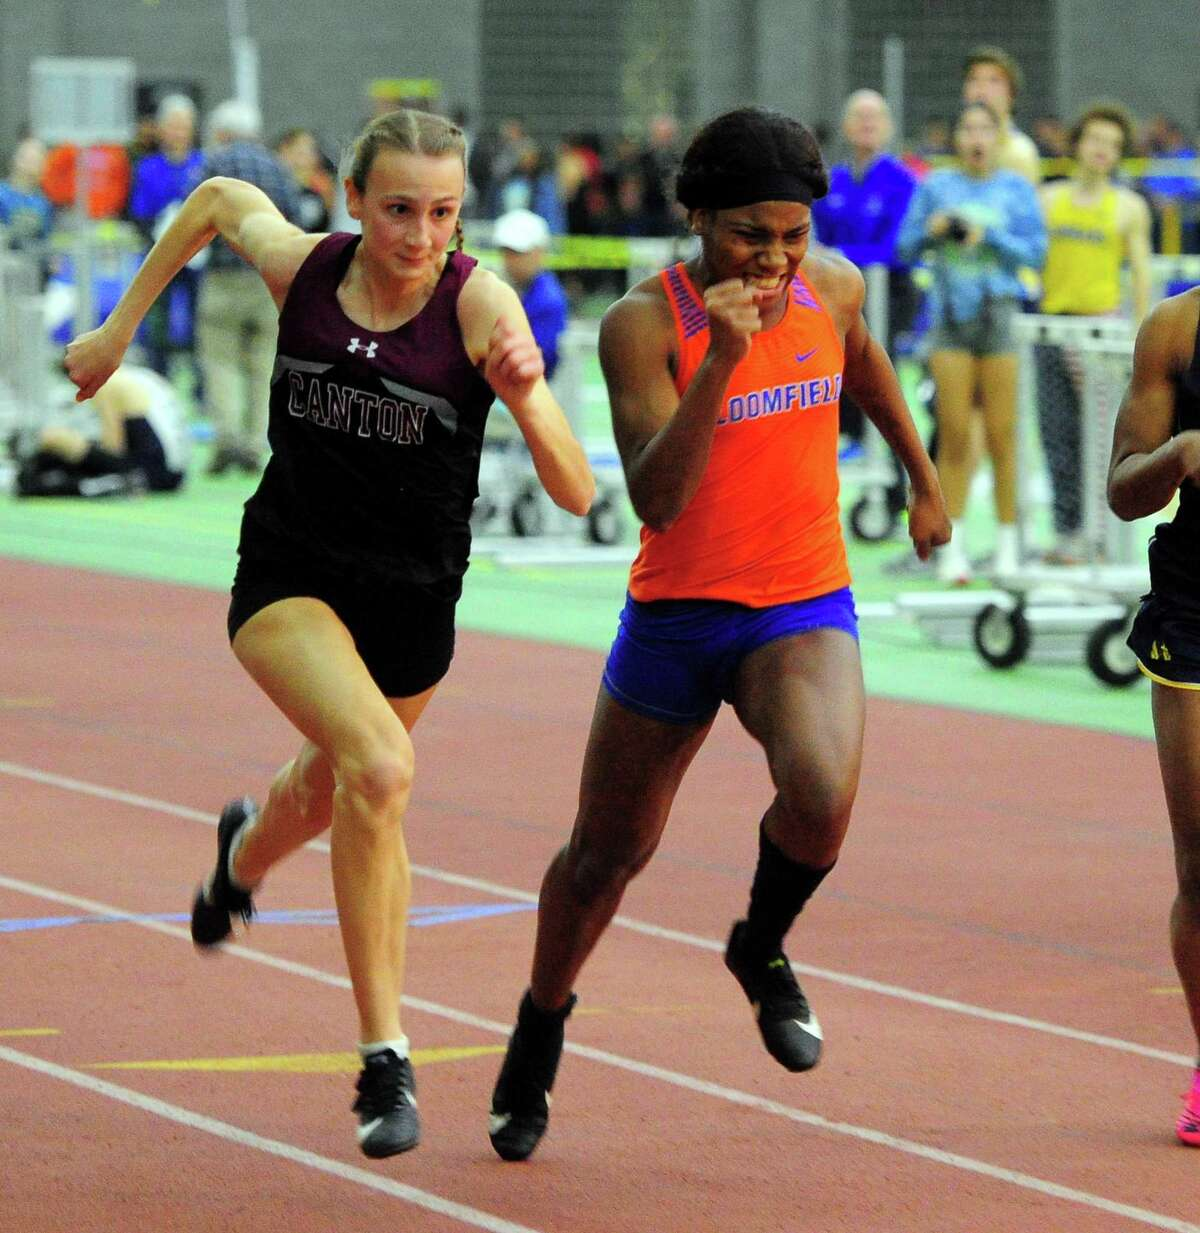 Canton's Chelsea Mitchell, left, and Bloomfield's Terry Miller compete in the 55-meter dash final at the CIAC Class S championship on Feb. 14.